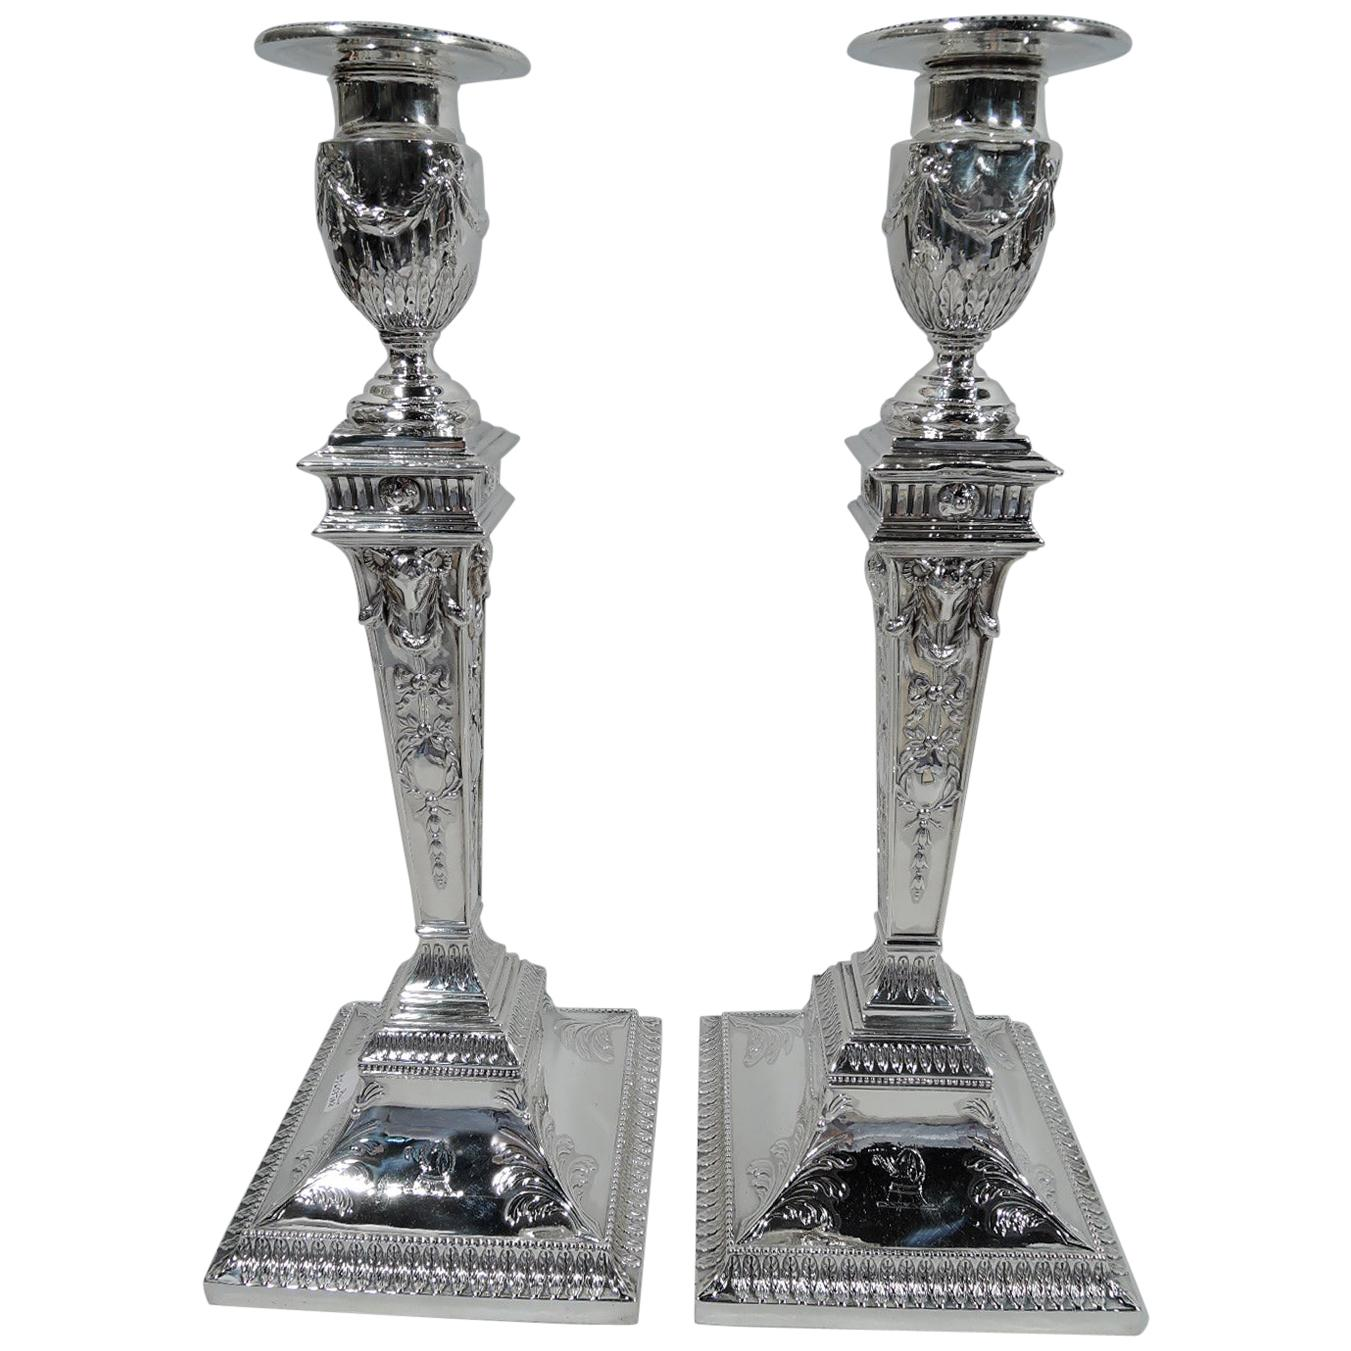 Pair of English Victorian Neoclassical Sterling Silver Candlesticks